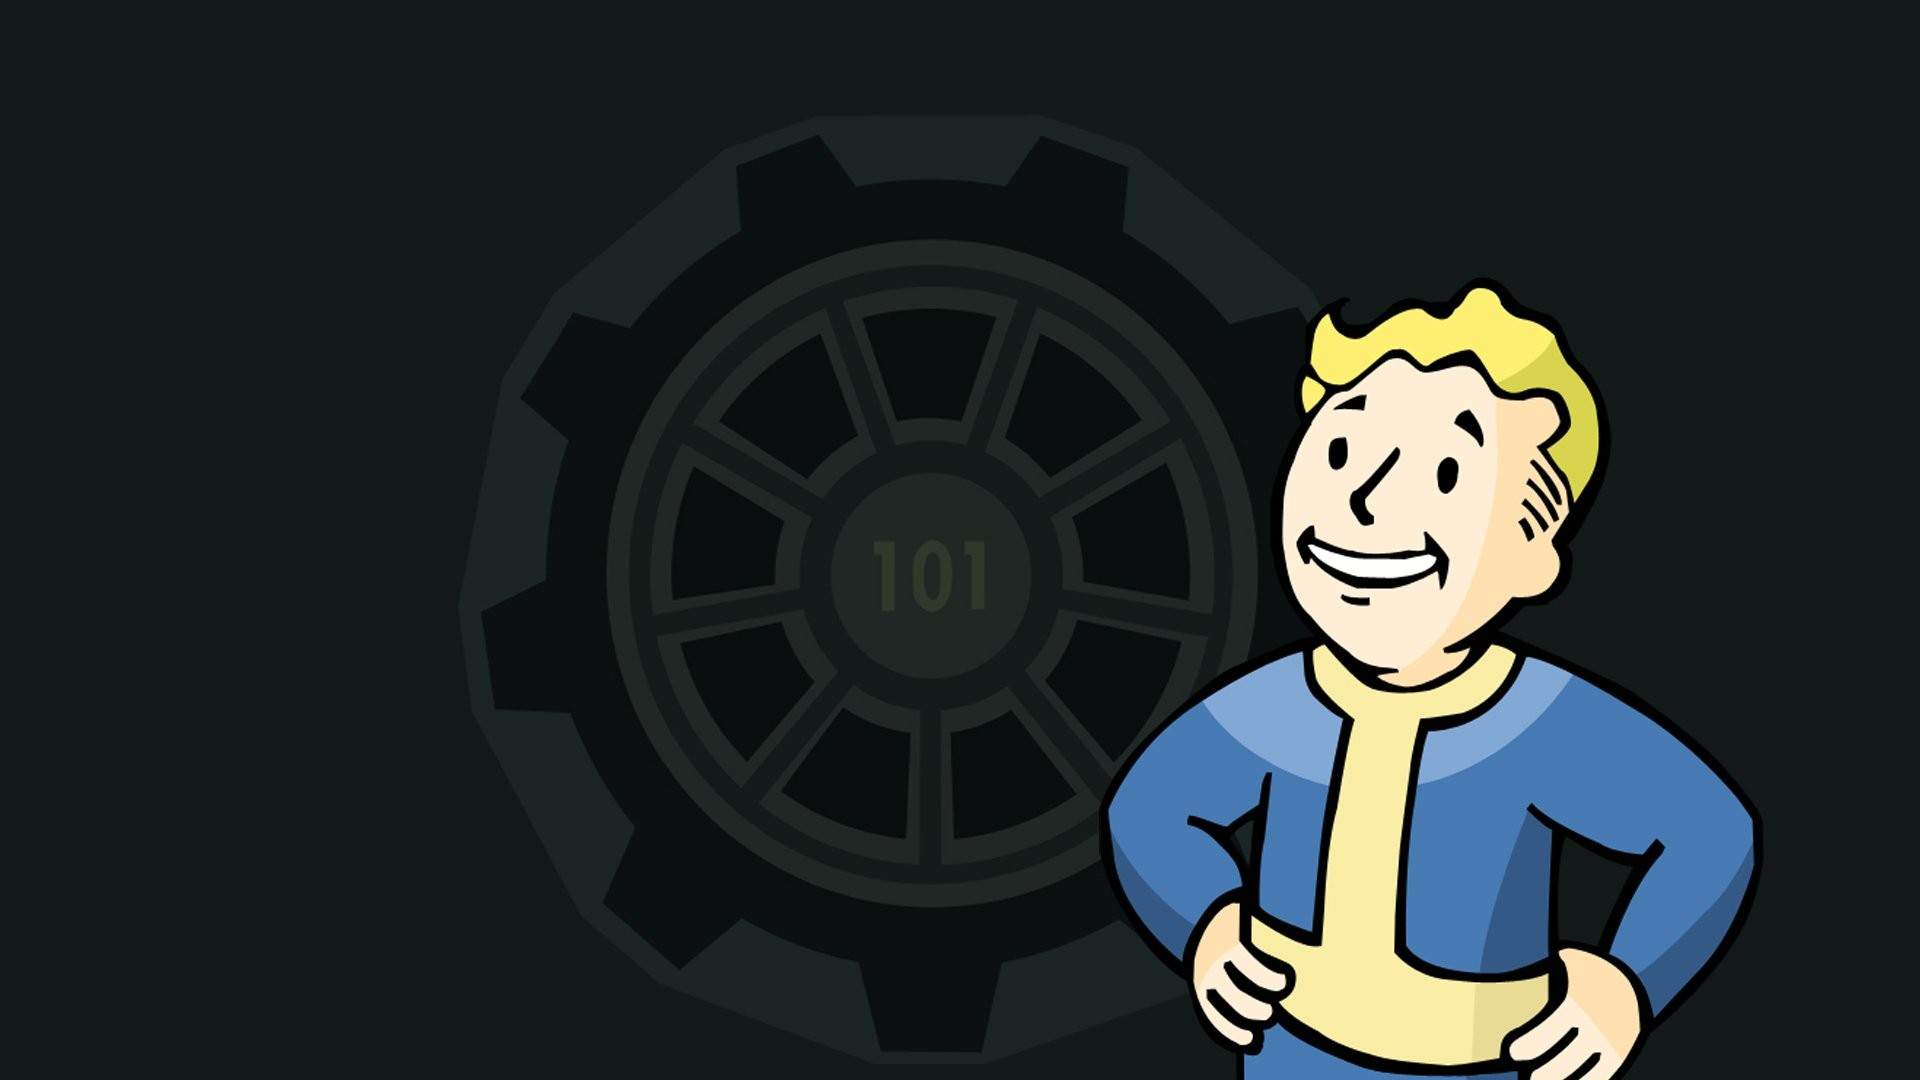 1920x1080 Video Game - Fallout Wallpaper